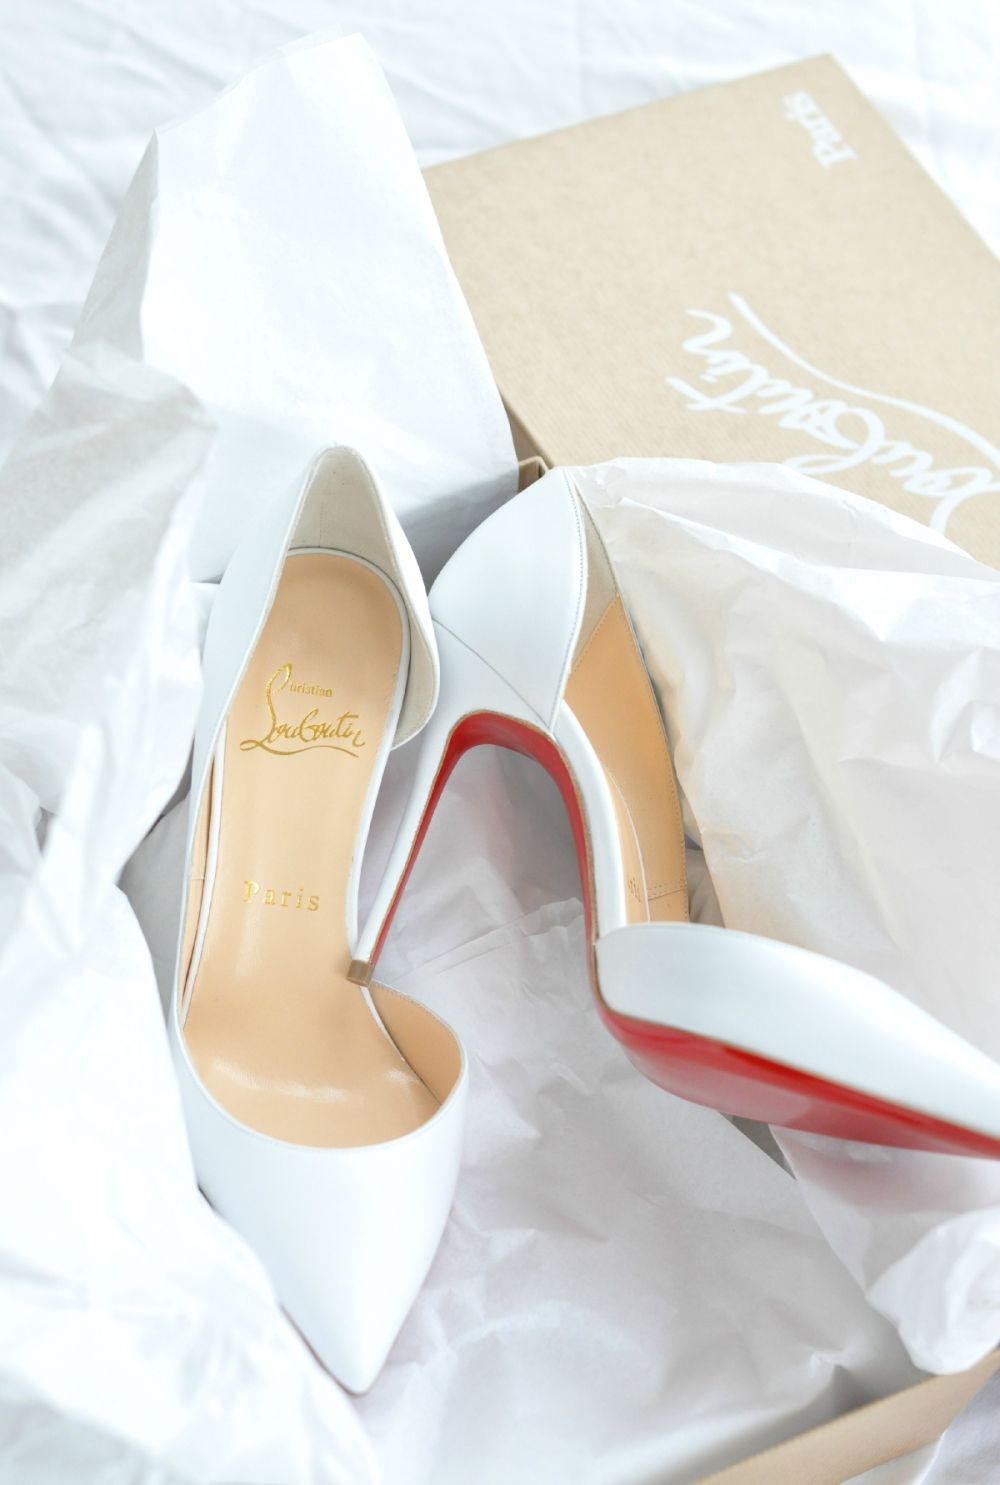 c39d63451ff Footwear | My Style | Fashion, Shoes, Christian louboutin shoes